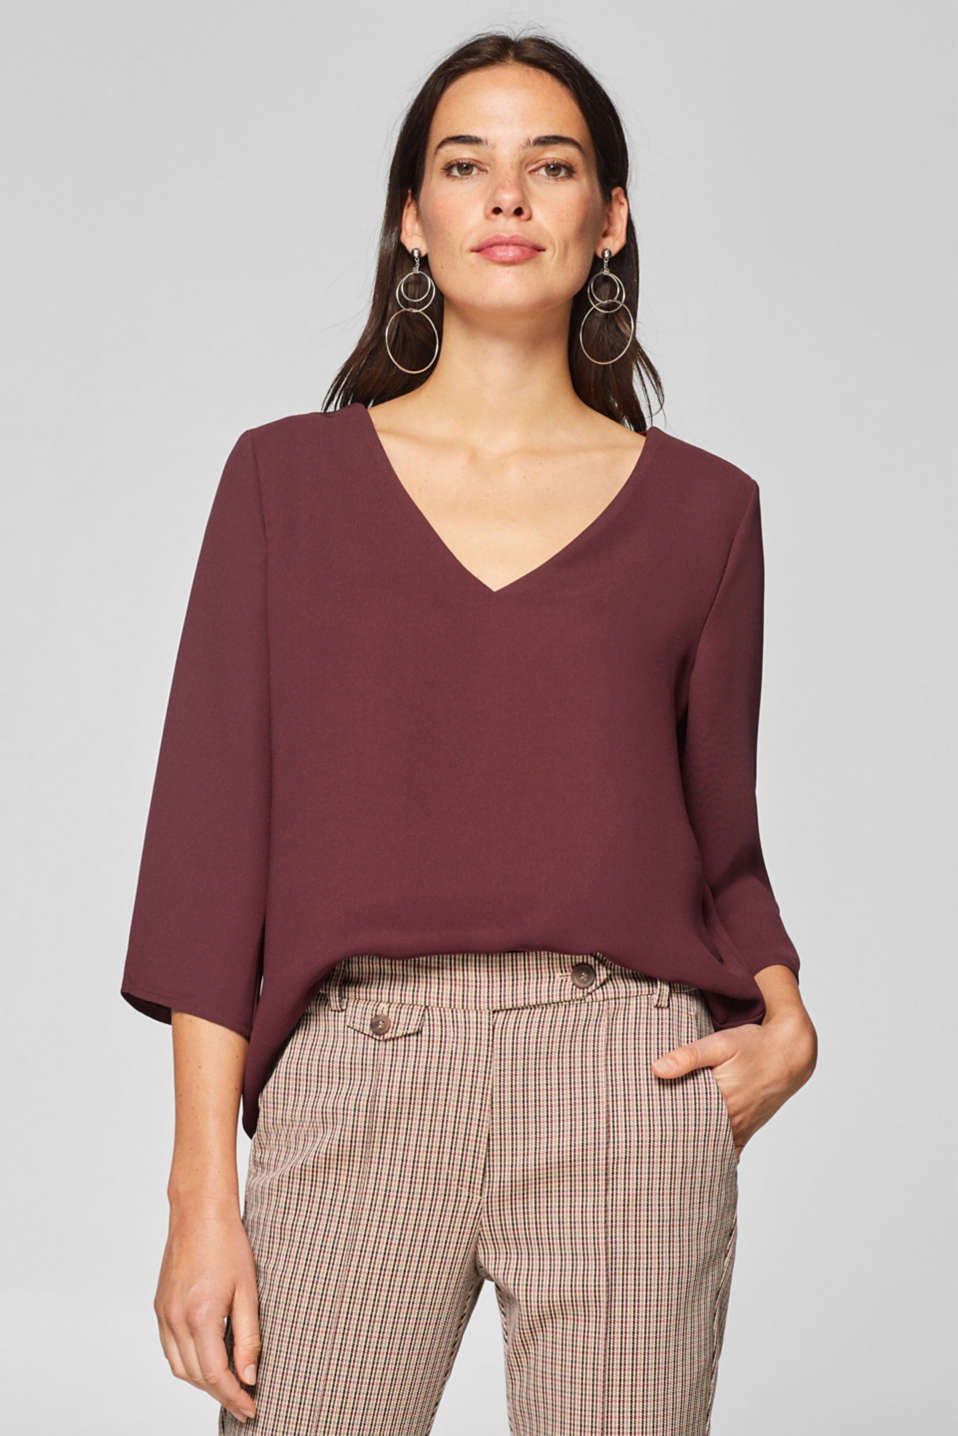 Esprit - Crêpe blouse in a simple style